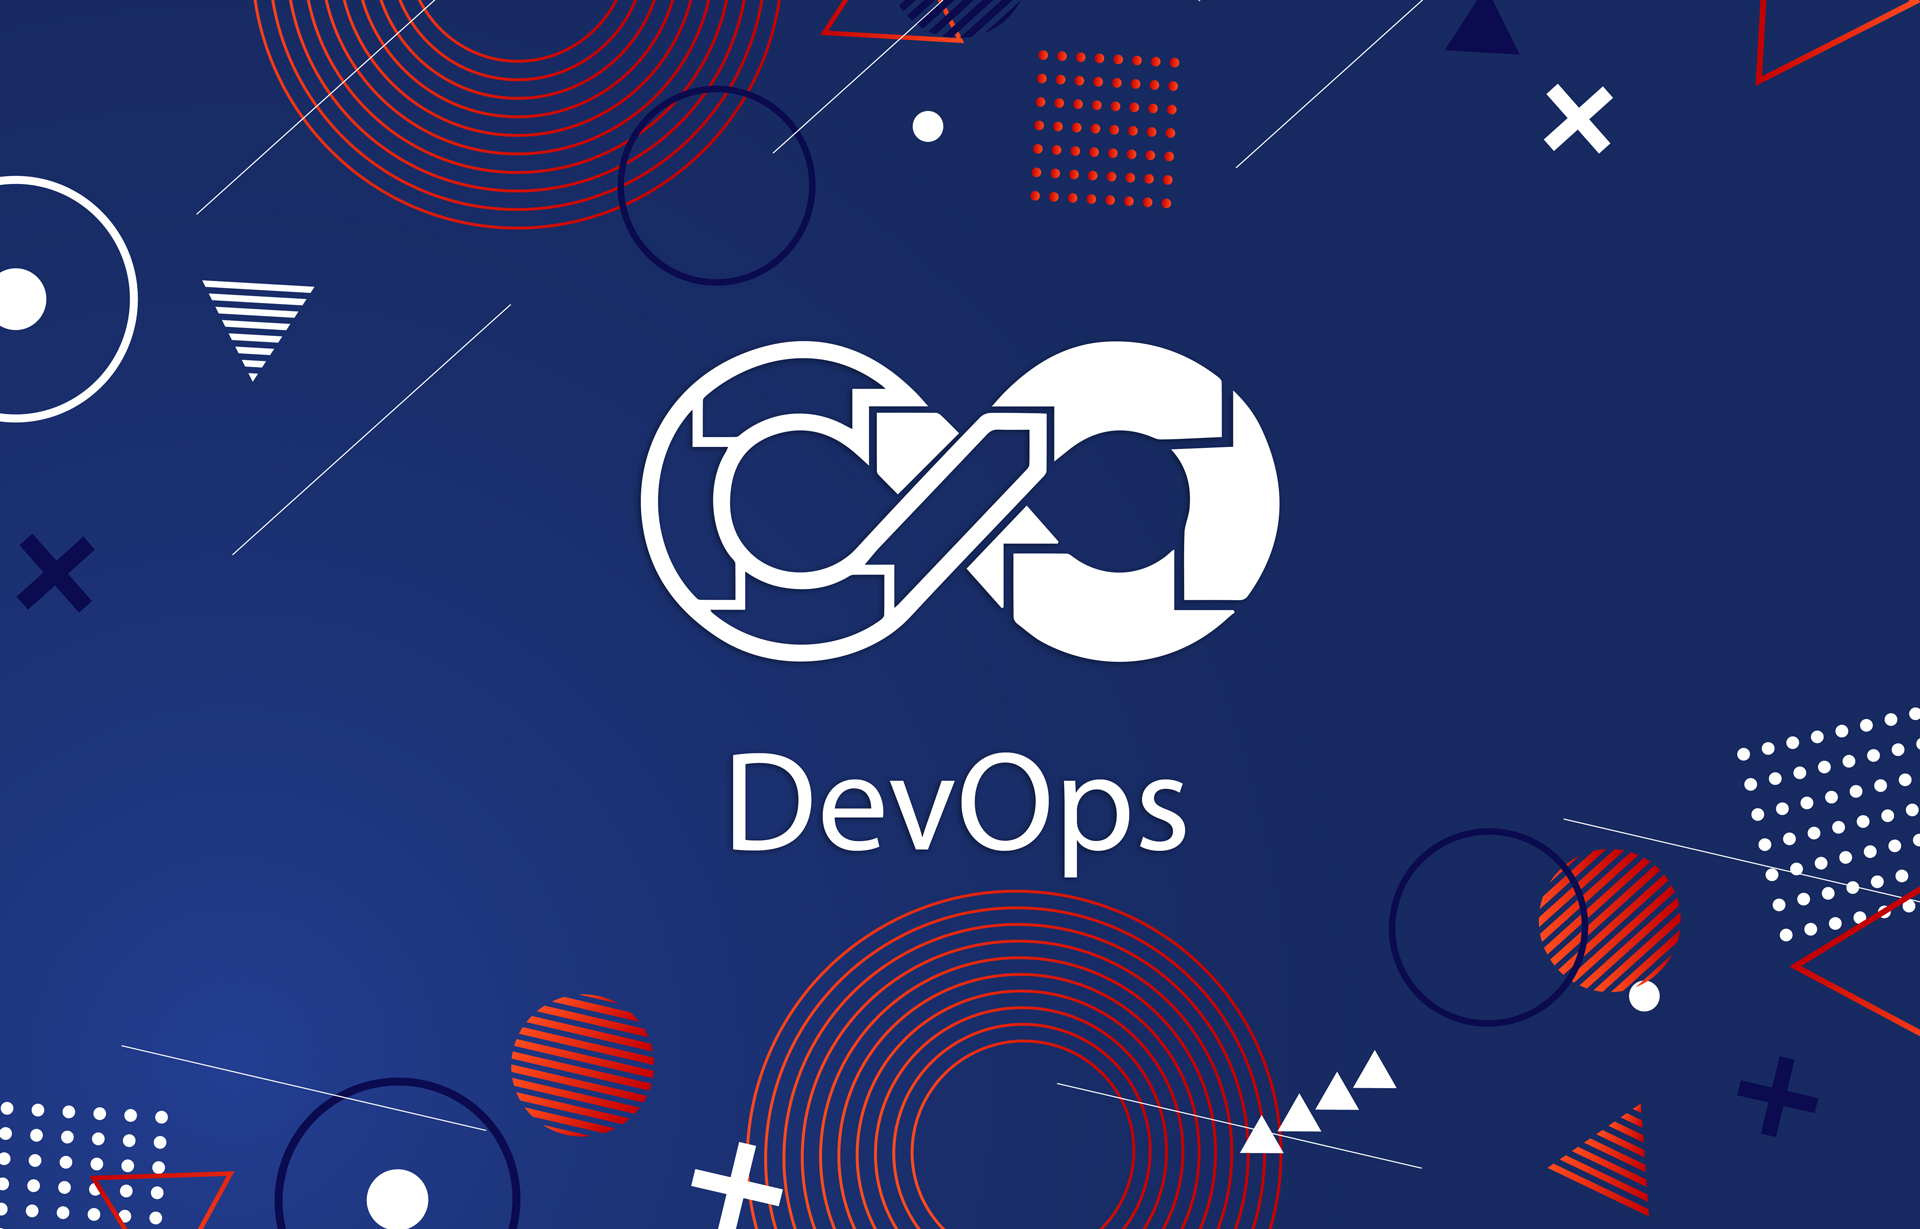 What will you get if you hire a DevOps Engineer?